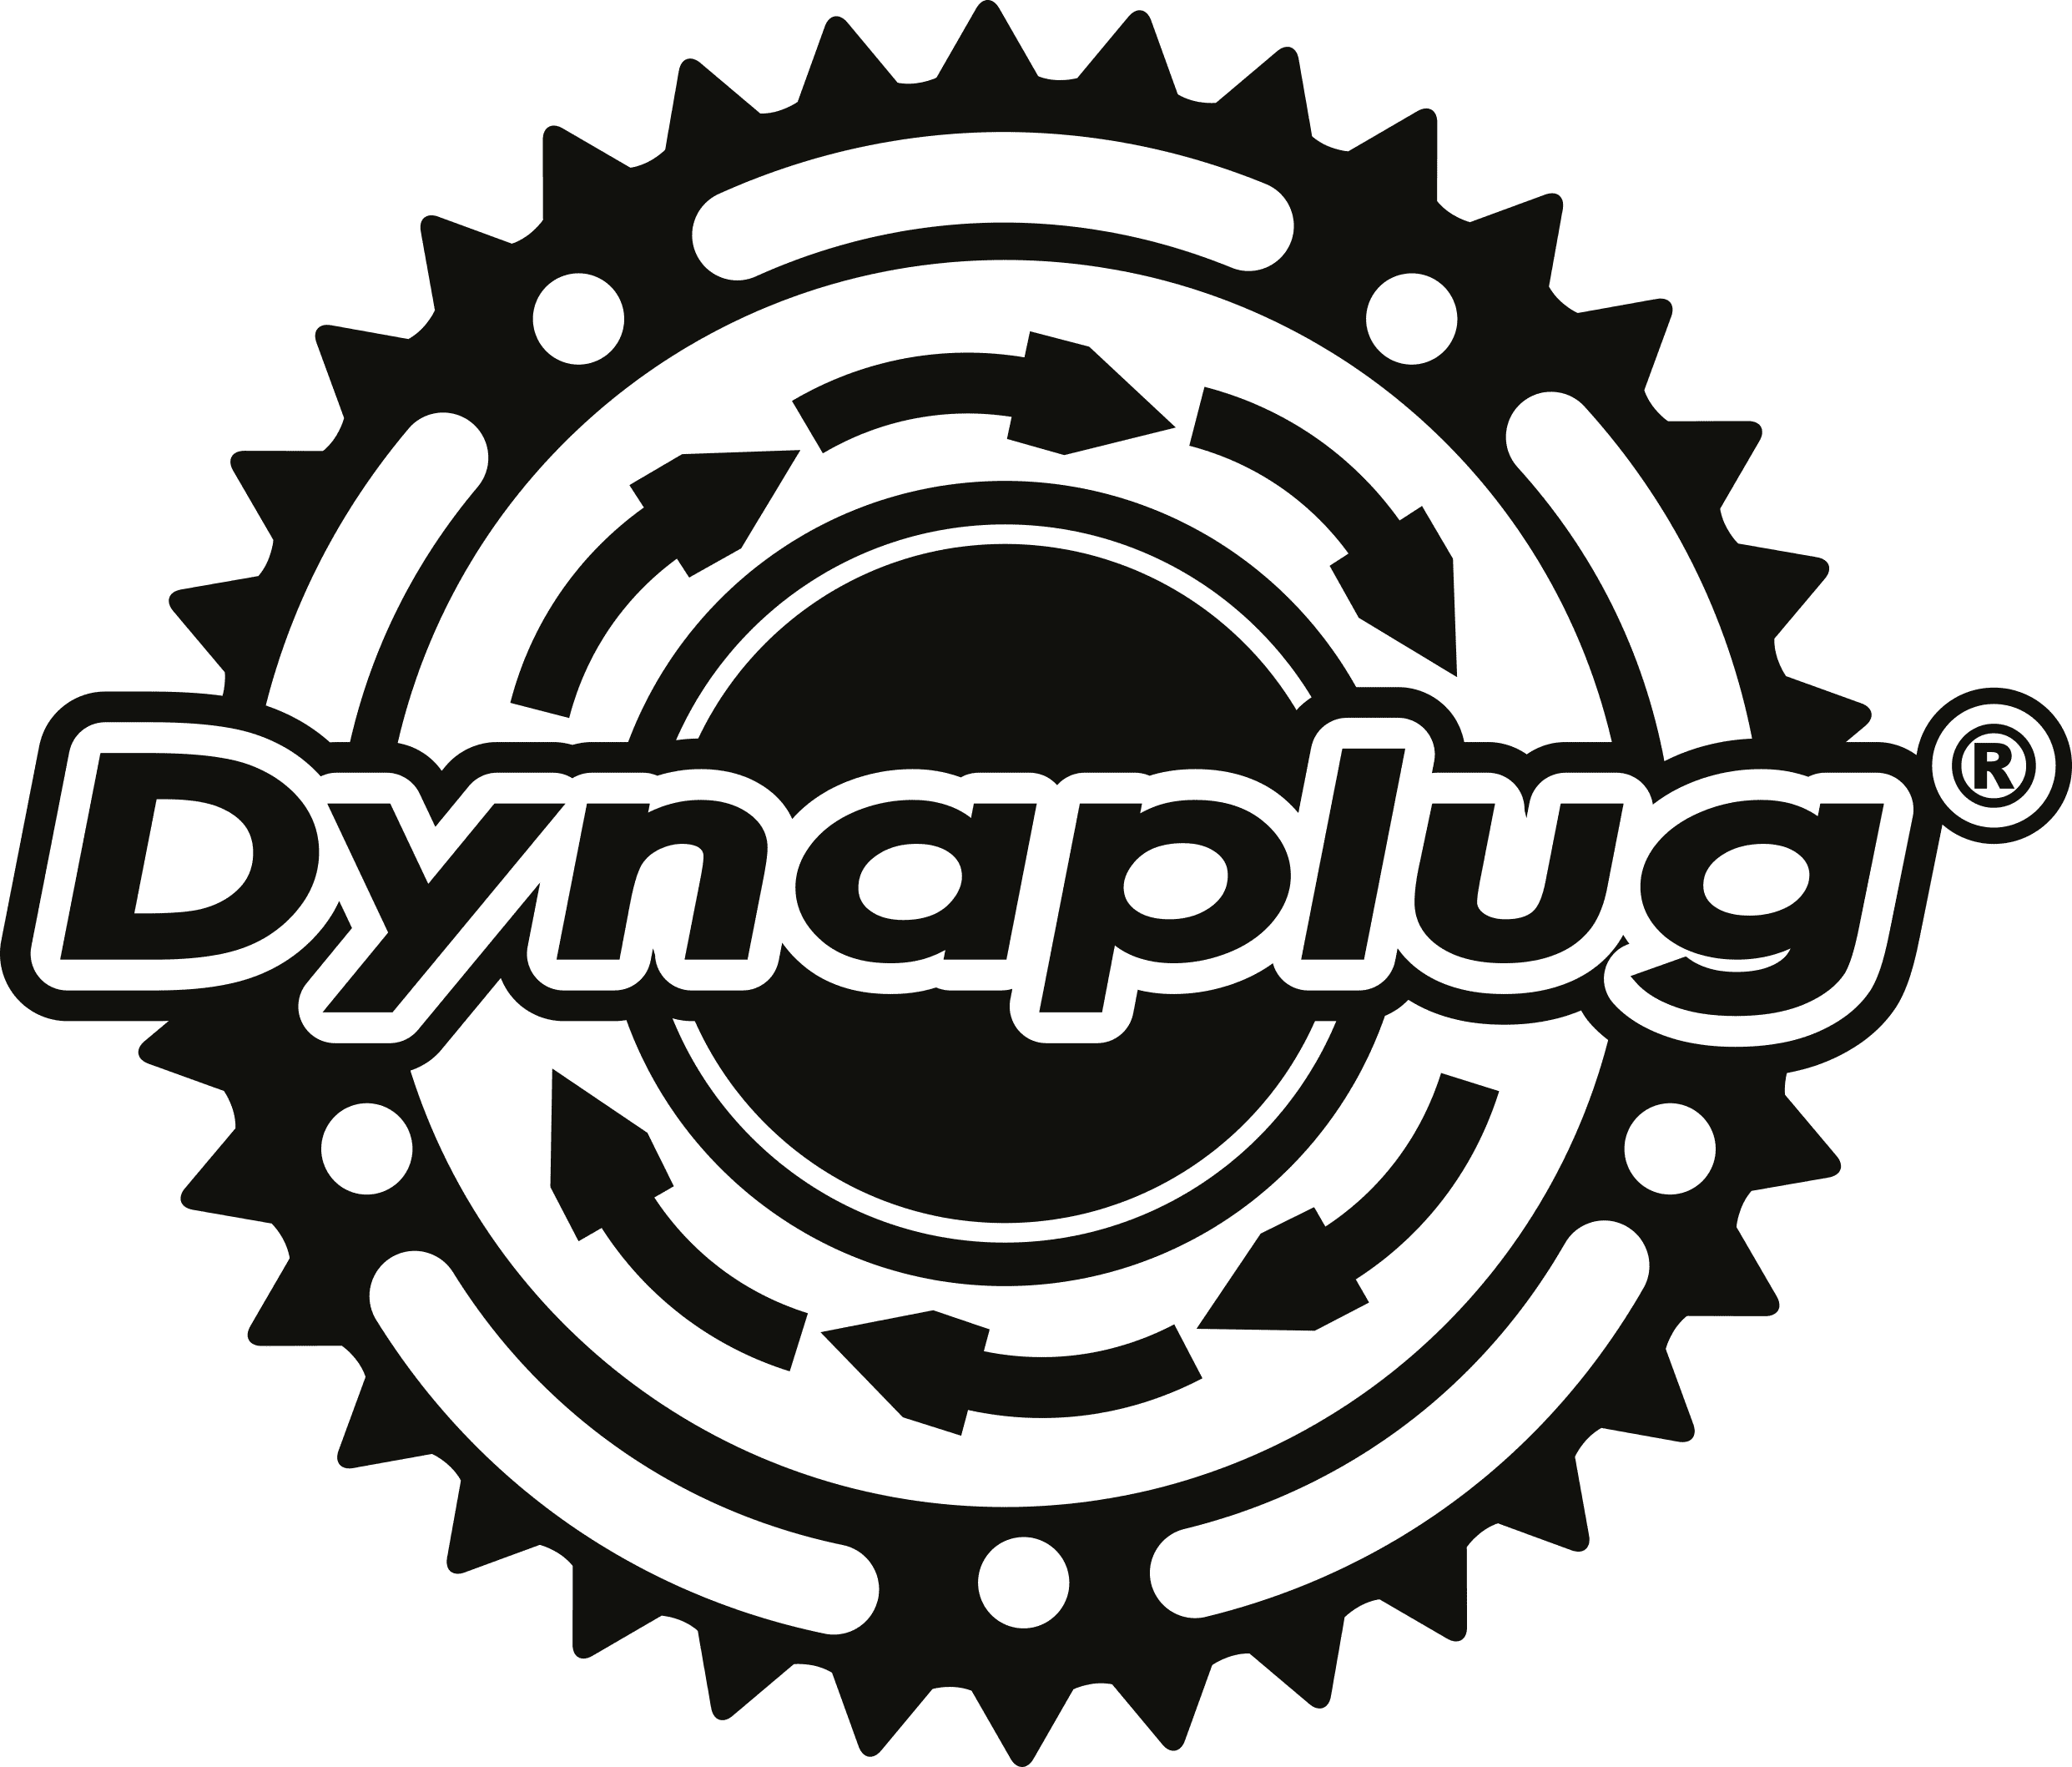 Dynaplug